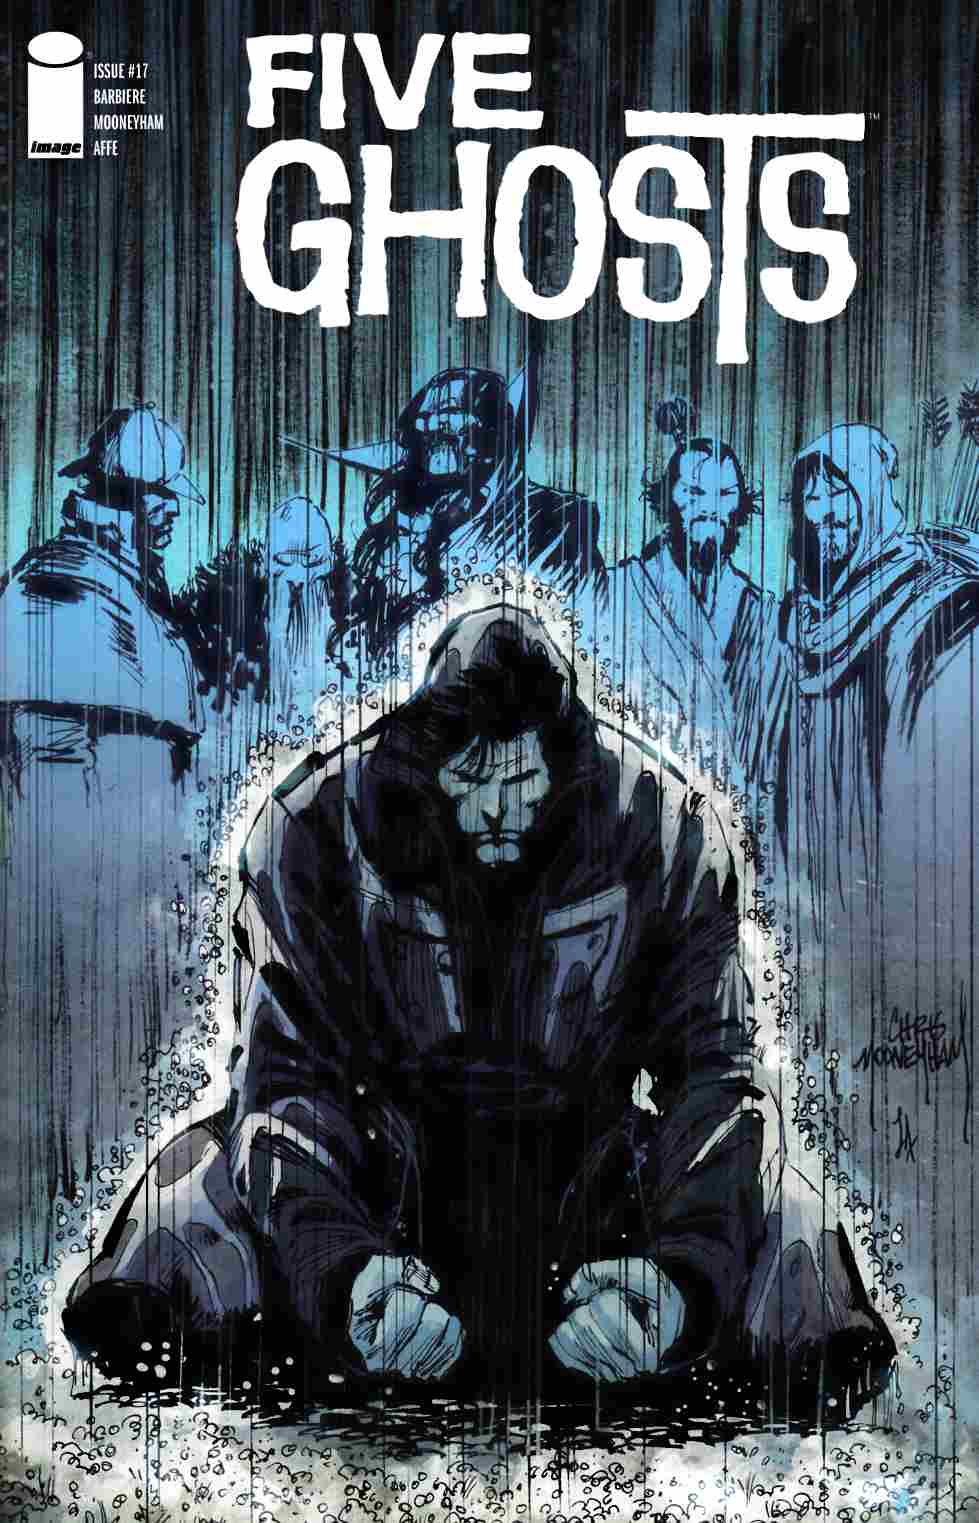 Five Ghosts #17 [Image Comic] THUMBNAIL